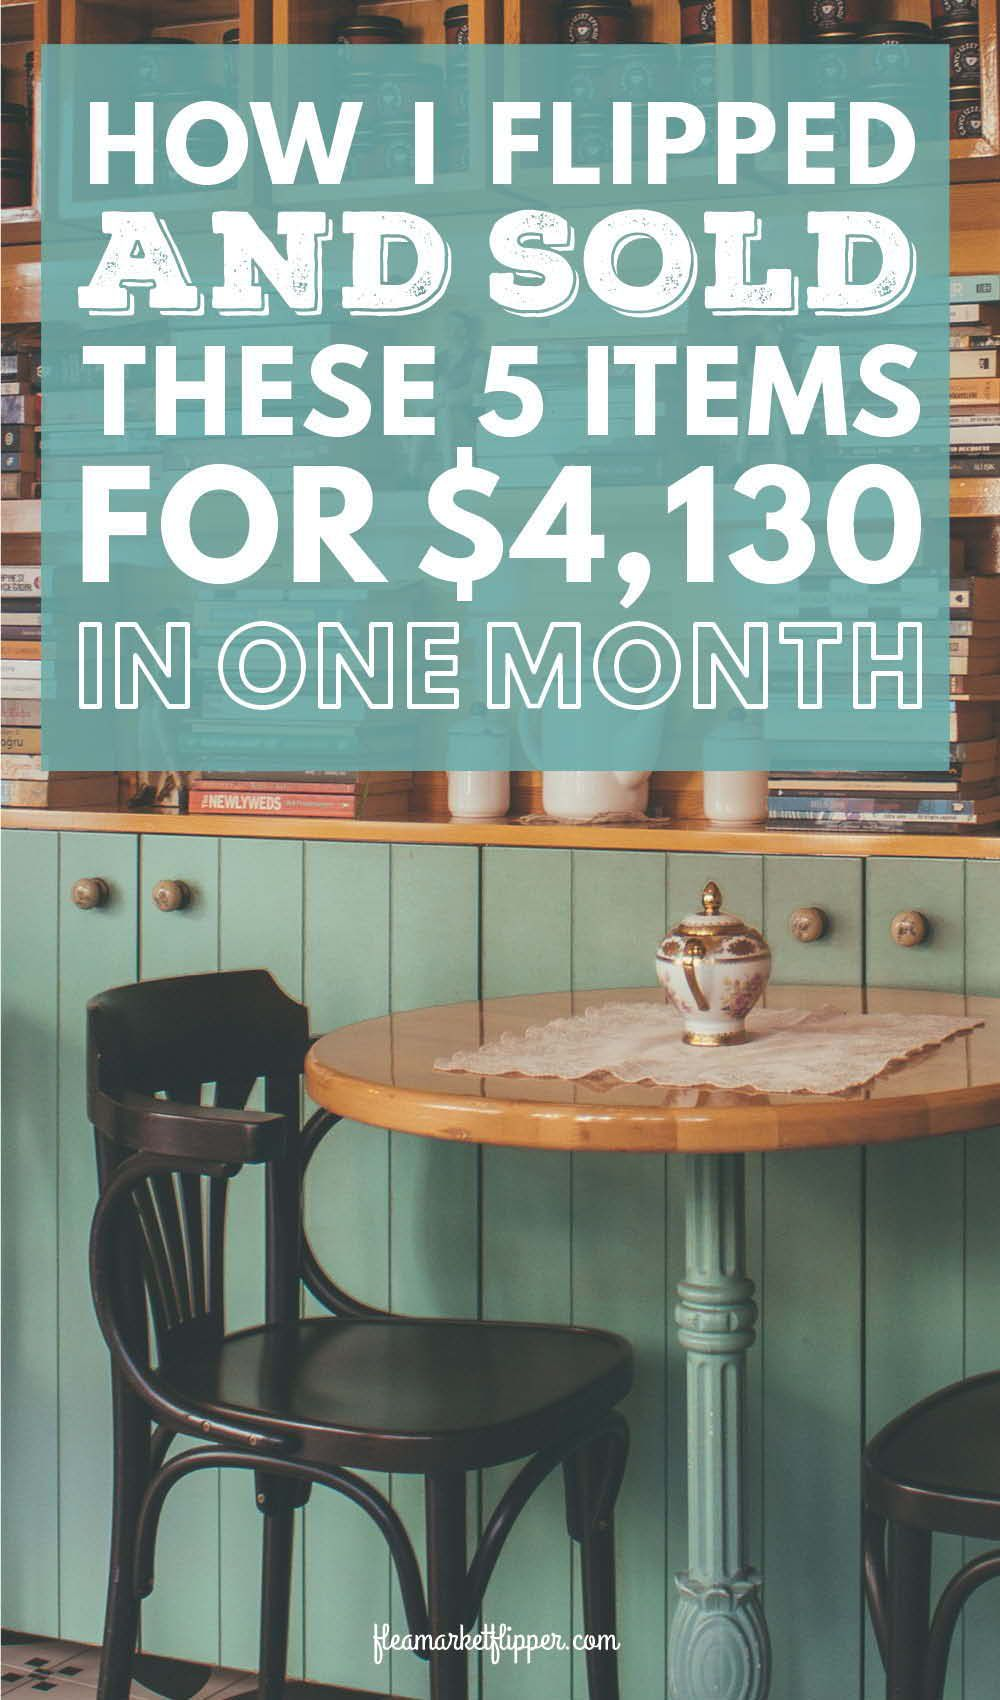 How we made 4,130 in 1 month of flipping flea market